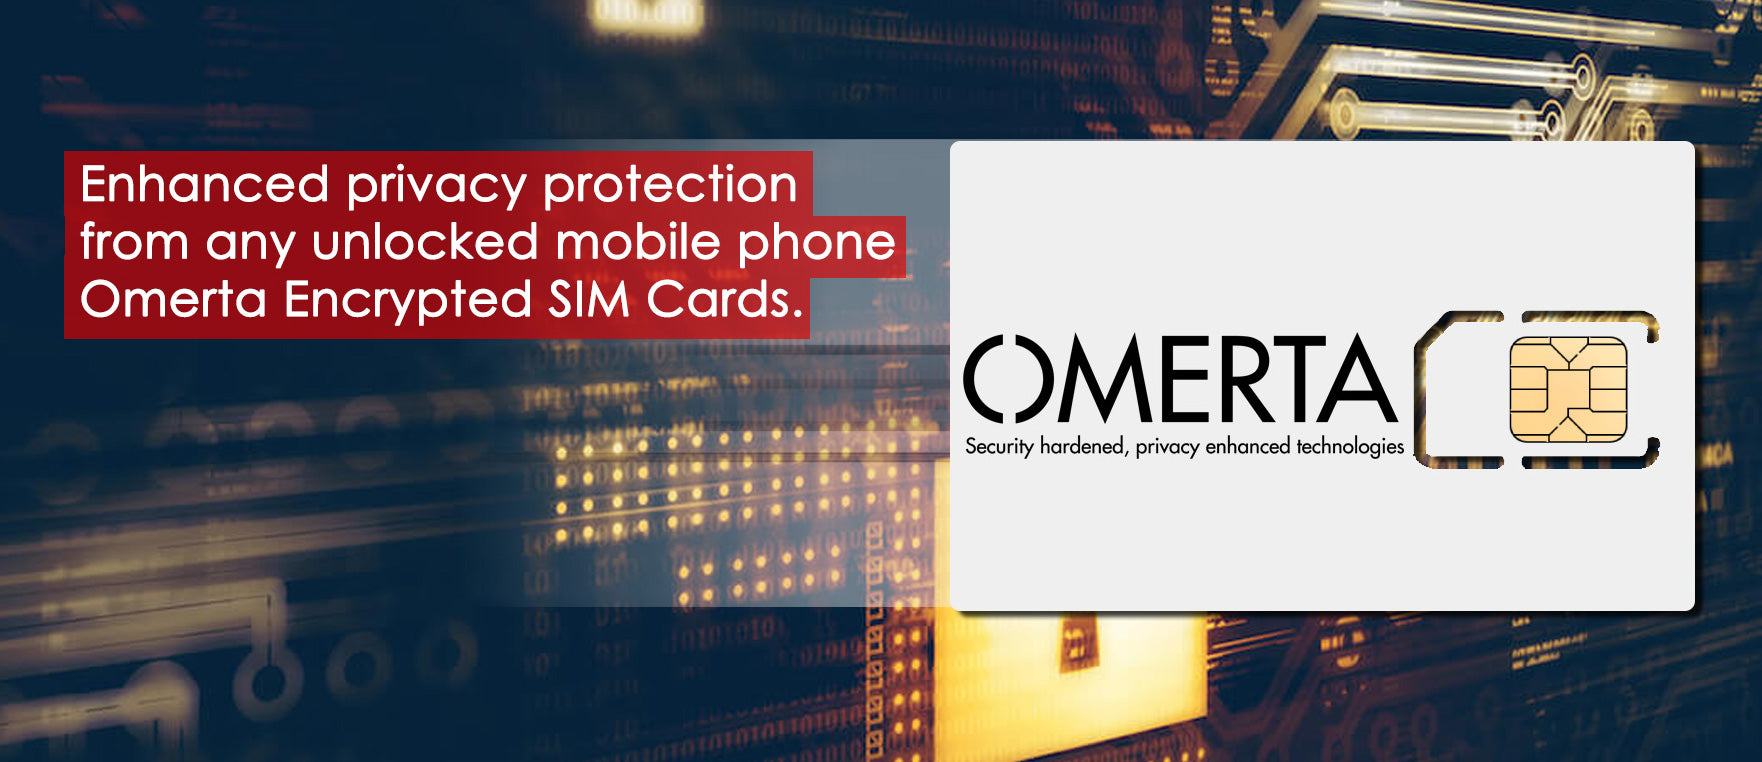 Not all encrypted SIMs are equal - why is an Omerta eSIM so expensive?